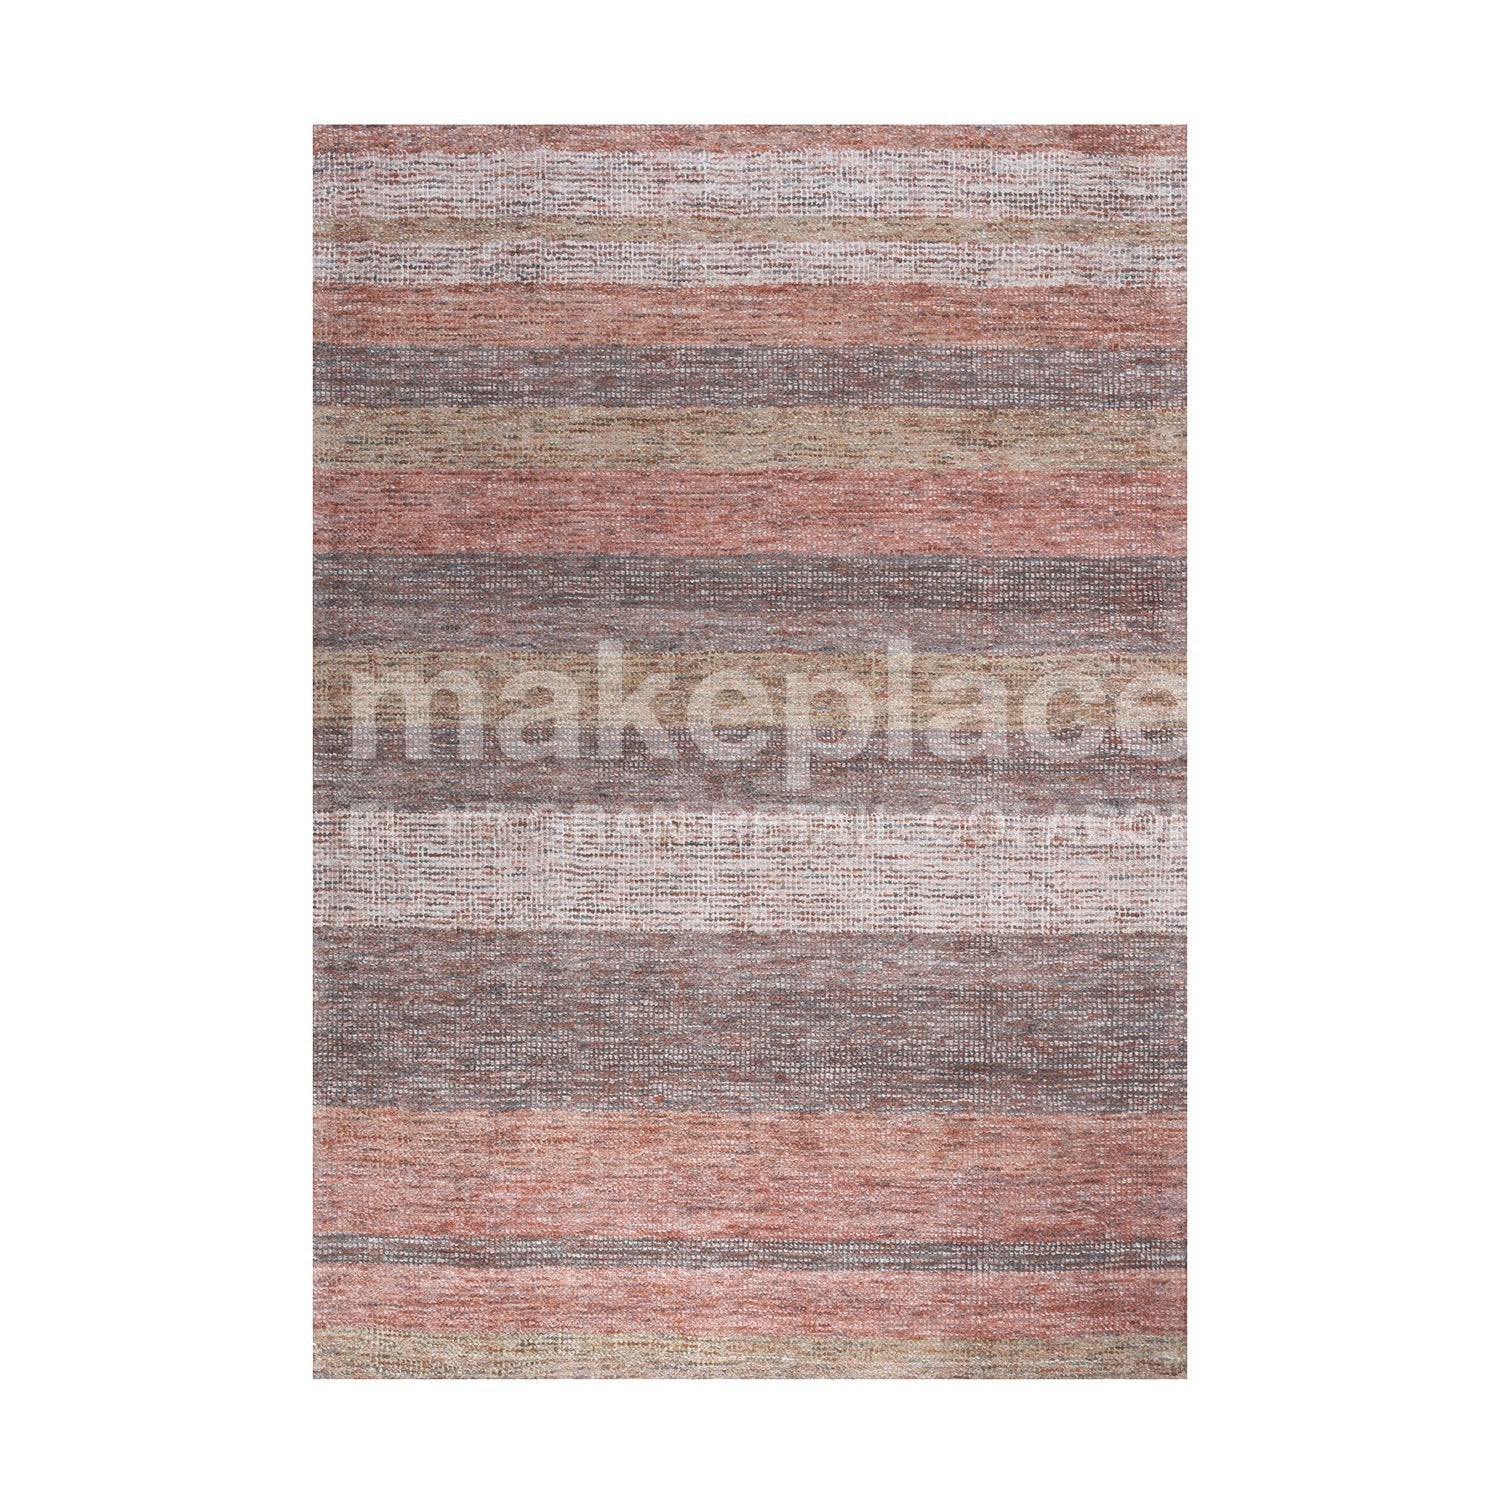 ALFOMBRA HANDWOVEN MADRAS 140X200 GI-17201 Makeplace